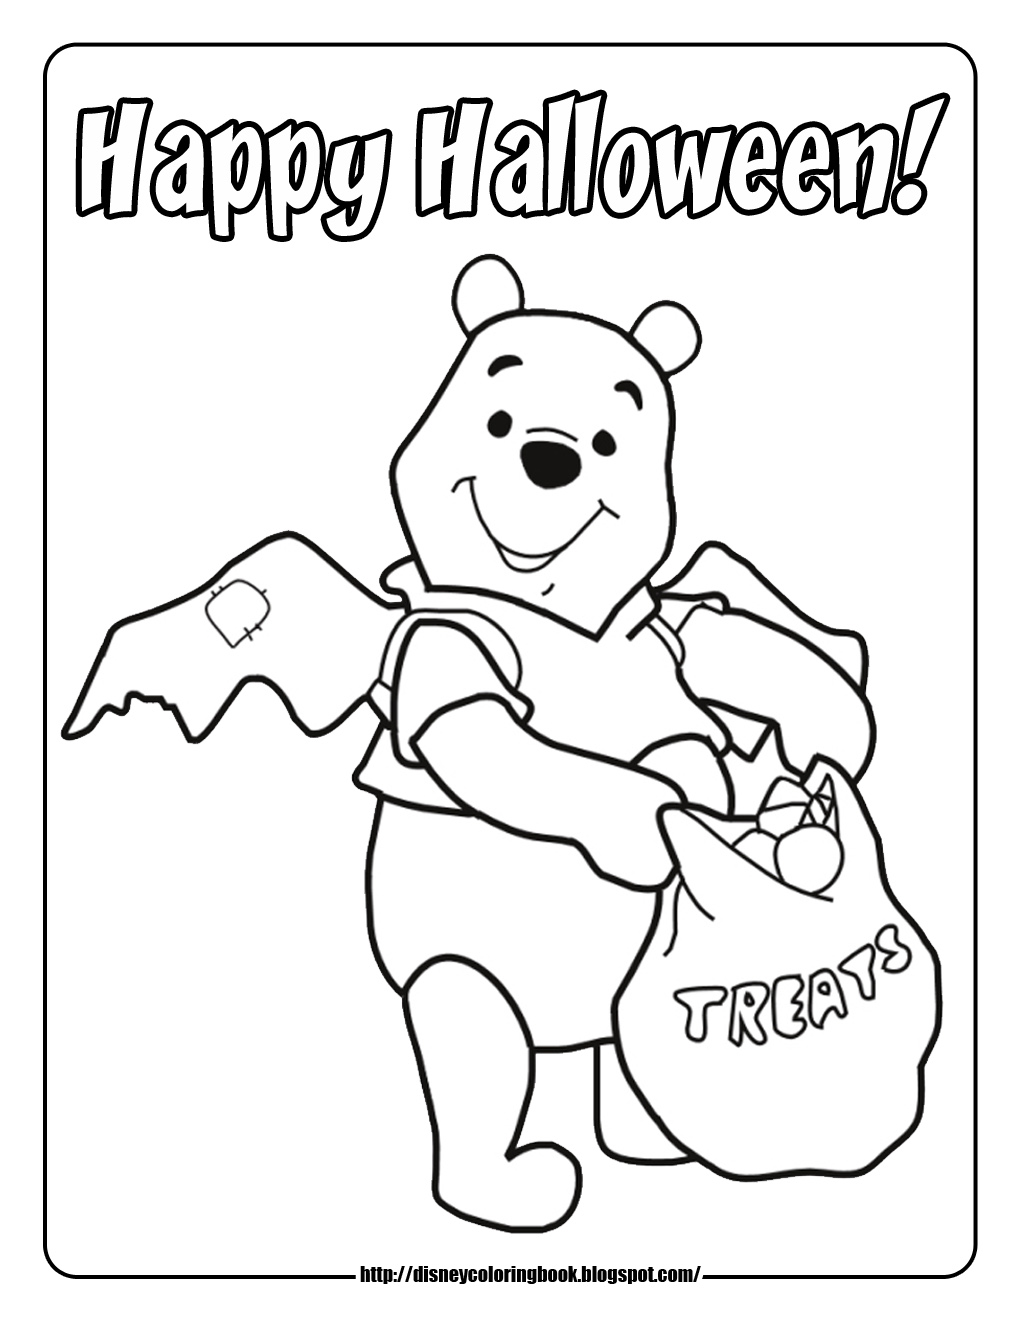 Halloween Coloring Pages Piglet Carving Pumpkin Trick Or Treat Winnie The Pooh